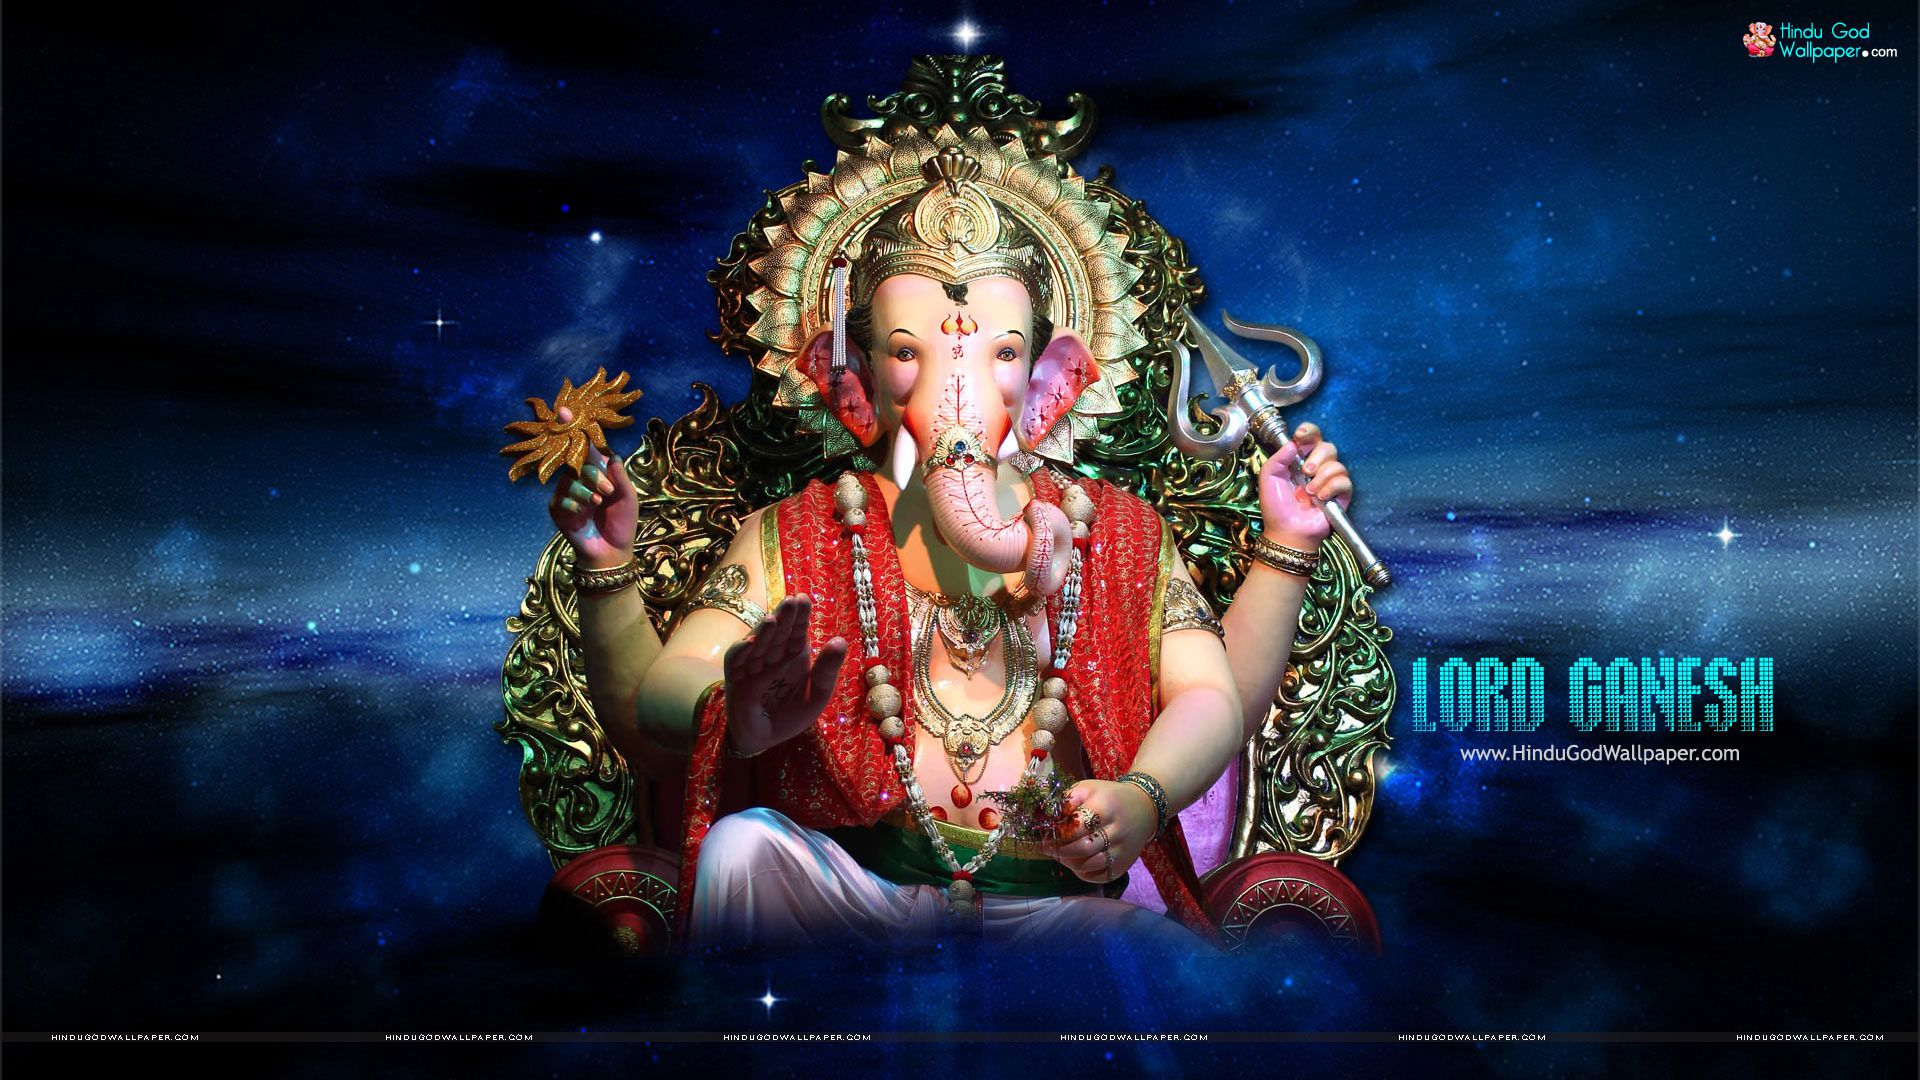 Shree Ganesh Hd Images: Lord Ganesha HD Wallpapers 1920x1080 Widescreen